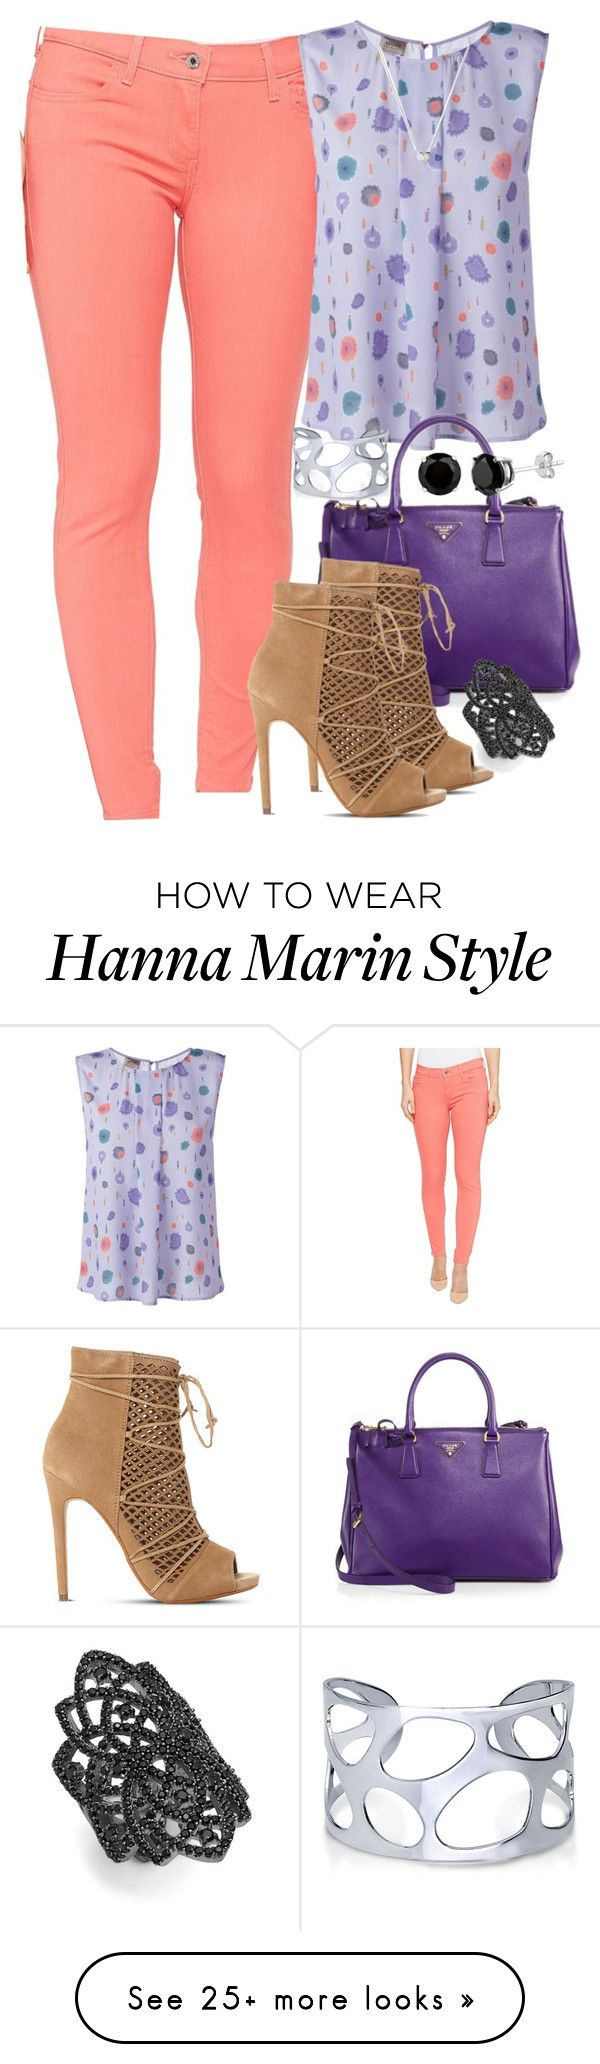 """Hanna Marin Inspired"" by smirnova-varya on Polyvore featuring Levi's, Armani Collezioni, Prada, Steve Madden, Links of London, BERRICLE, nOir, PrettyLittleLiars, pll and hannamarin"